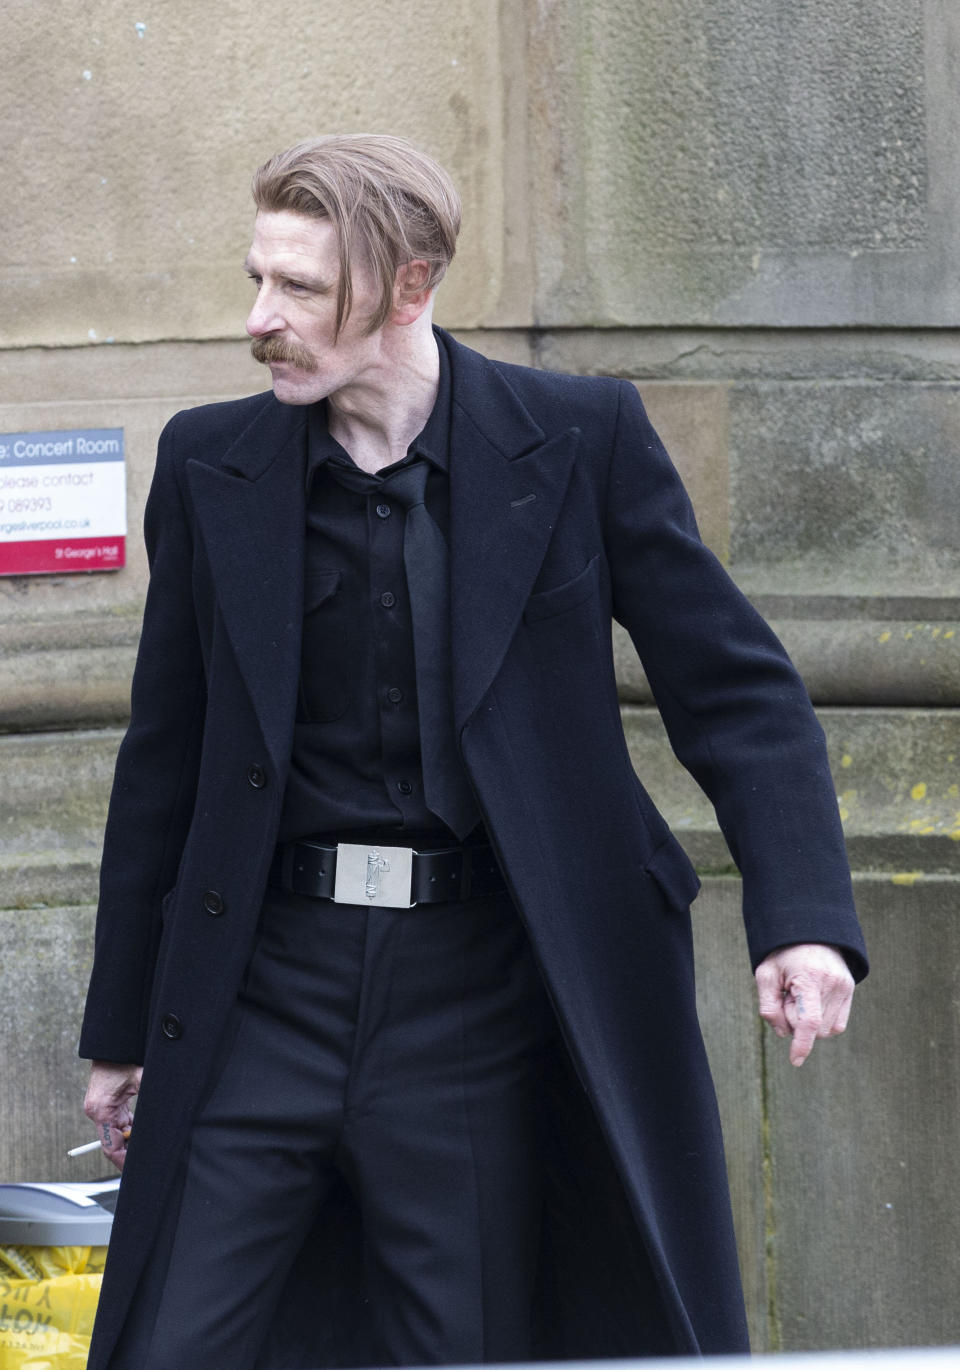 Paul Anderson, who plays Arthur Shelby, takes a break from filming. Peaky Blinders start filming in Liverpool, at St George's Hall, as season 6 gets underway, pictured in Liverpool city centre, March 4 2021. (SWNS)